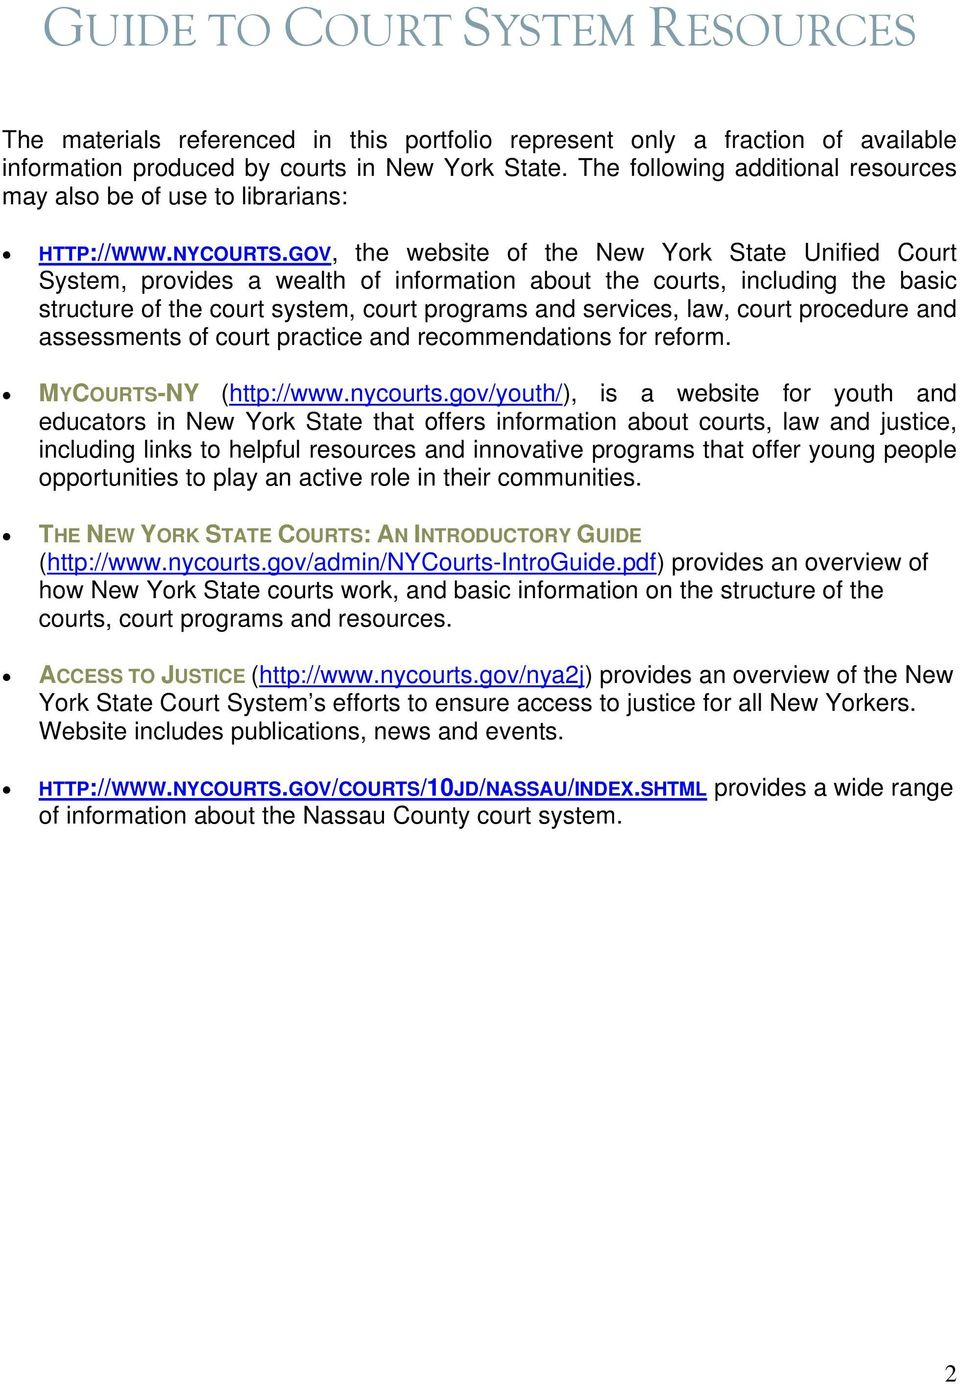 GOV, the website of the New York State Unified Court System, provides a wealth of information about the courts, including the basic structure of the court system, court programs and services, law,